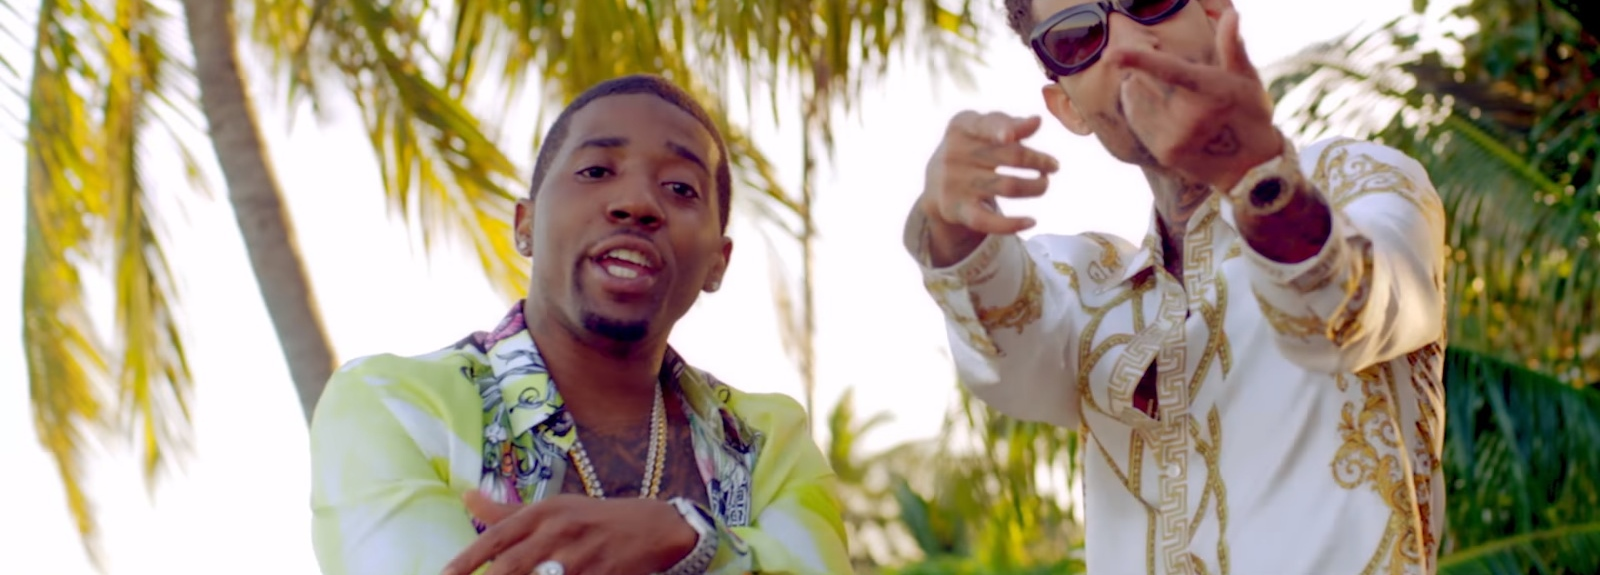 Versace Shirt And Versus Versace Sunglasses - YFN Lucci - Everyday We Lit Official Music Video Product Placement